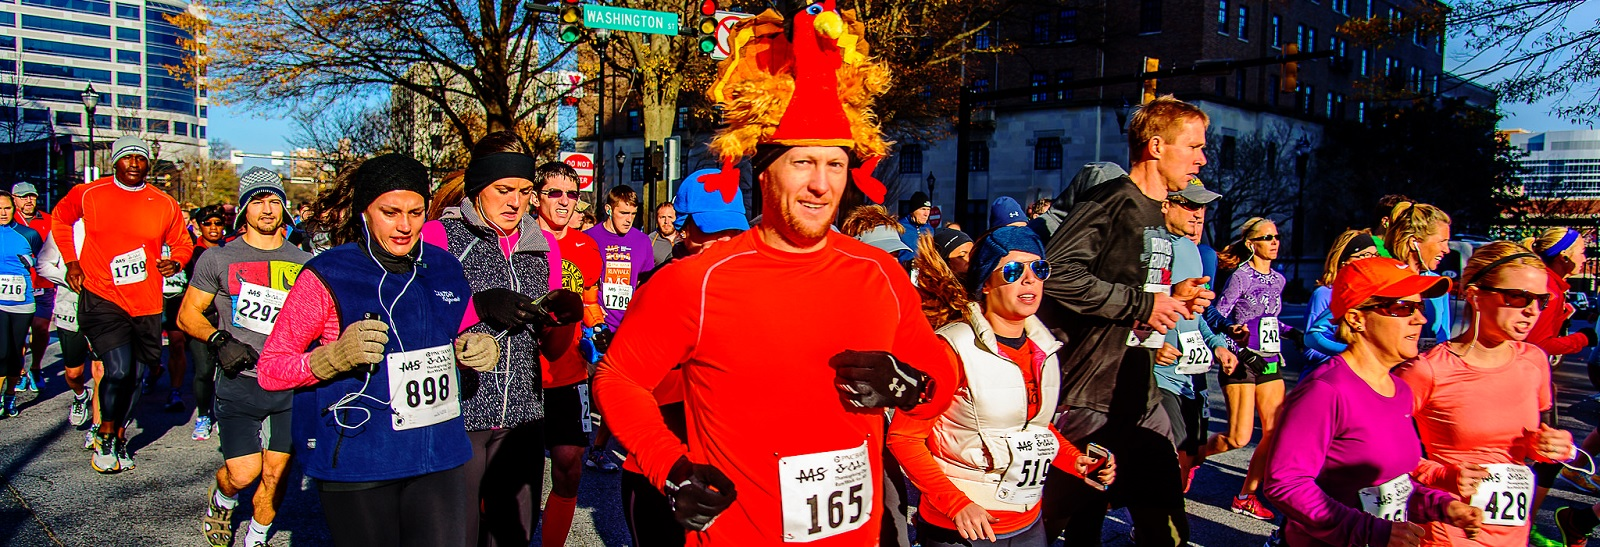 Image result for pnc bank thanksgiving run de